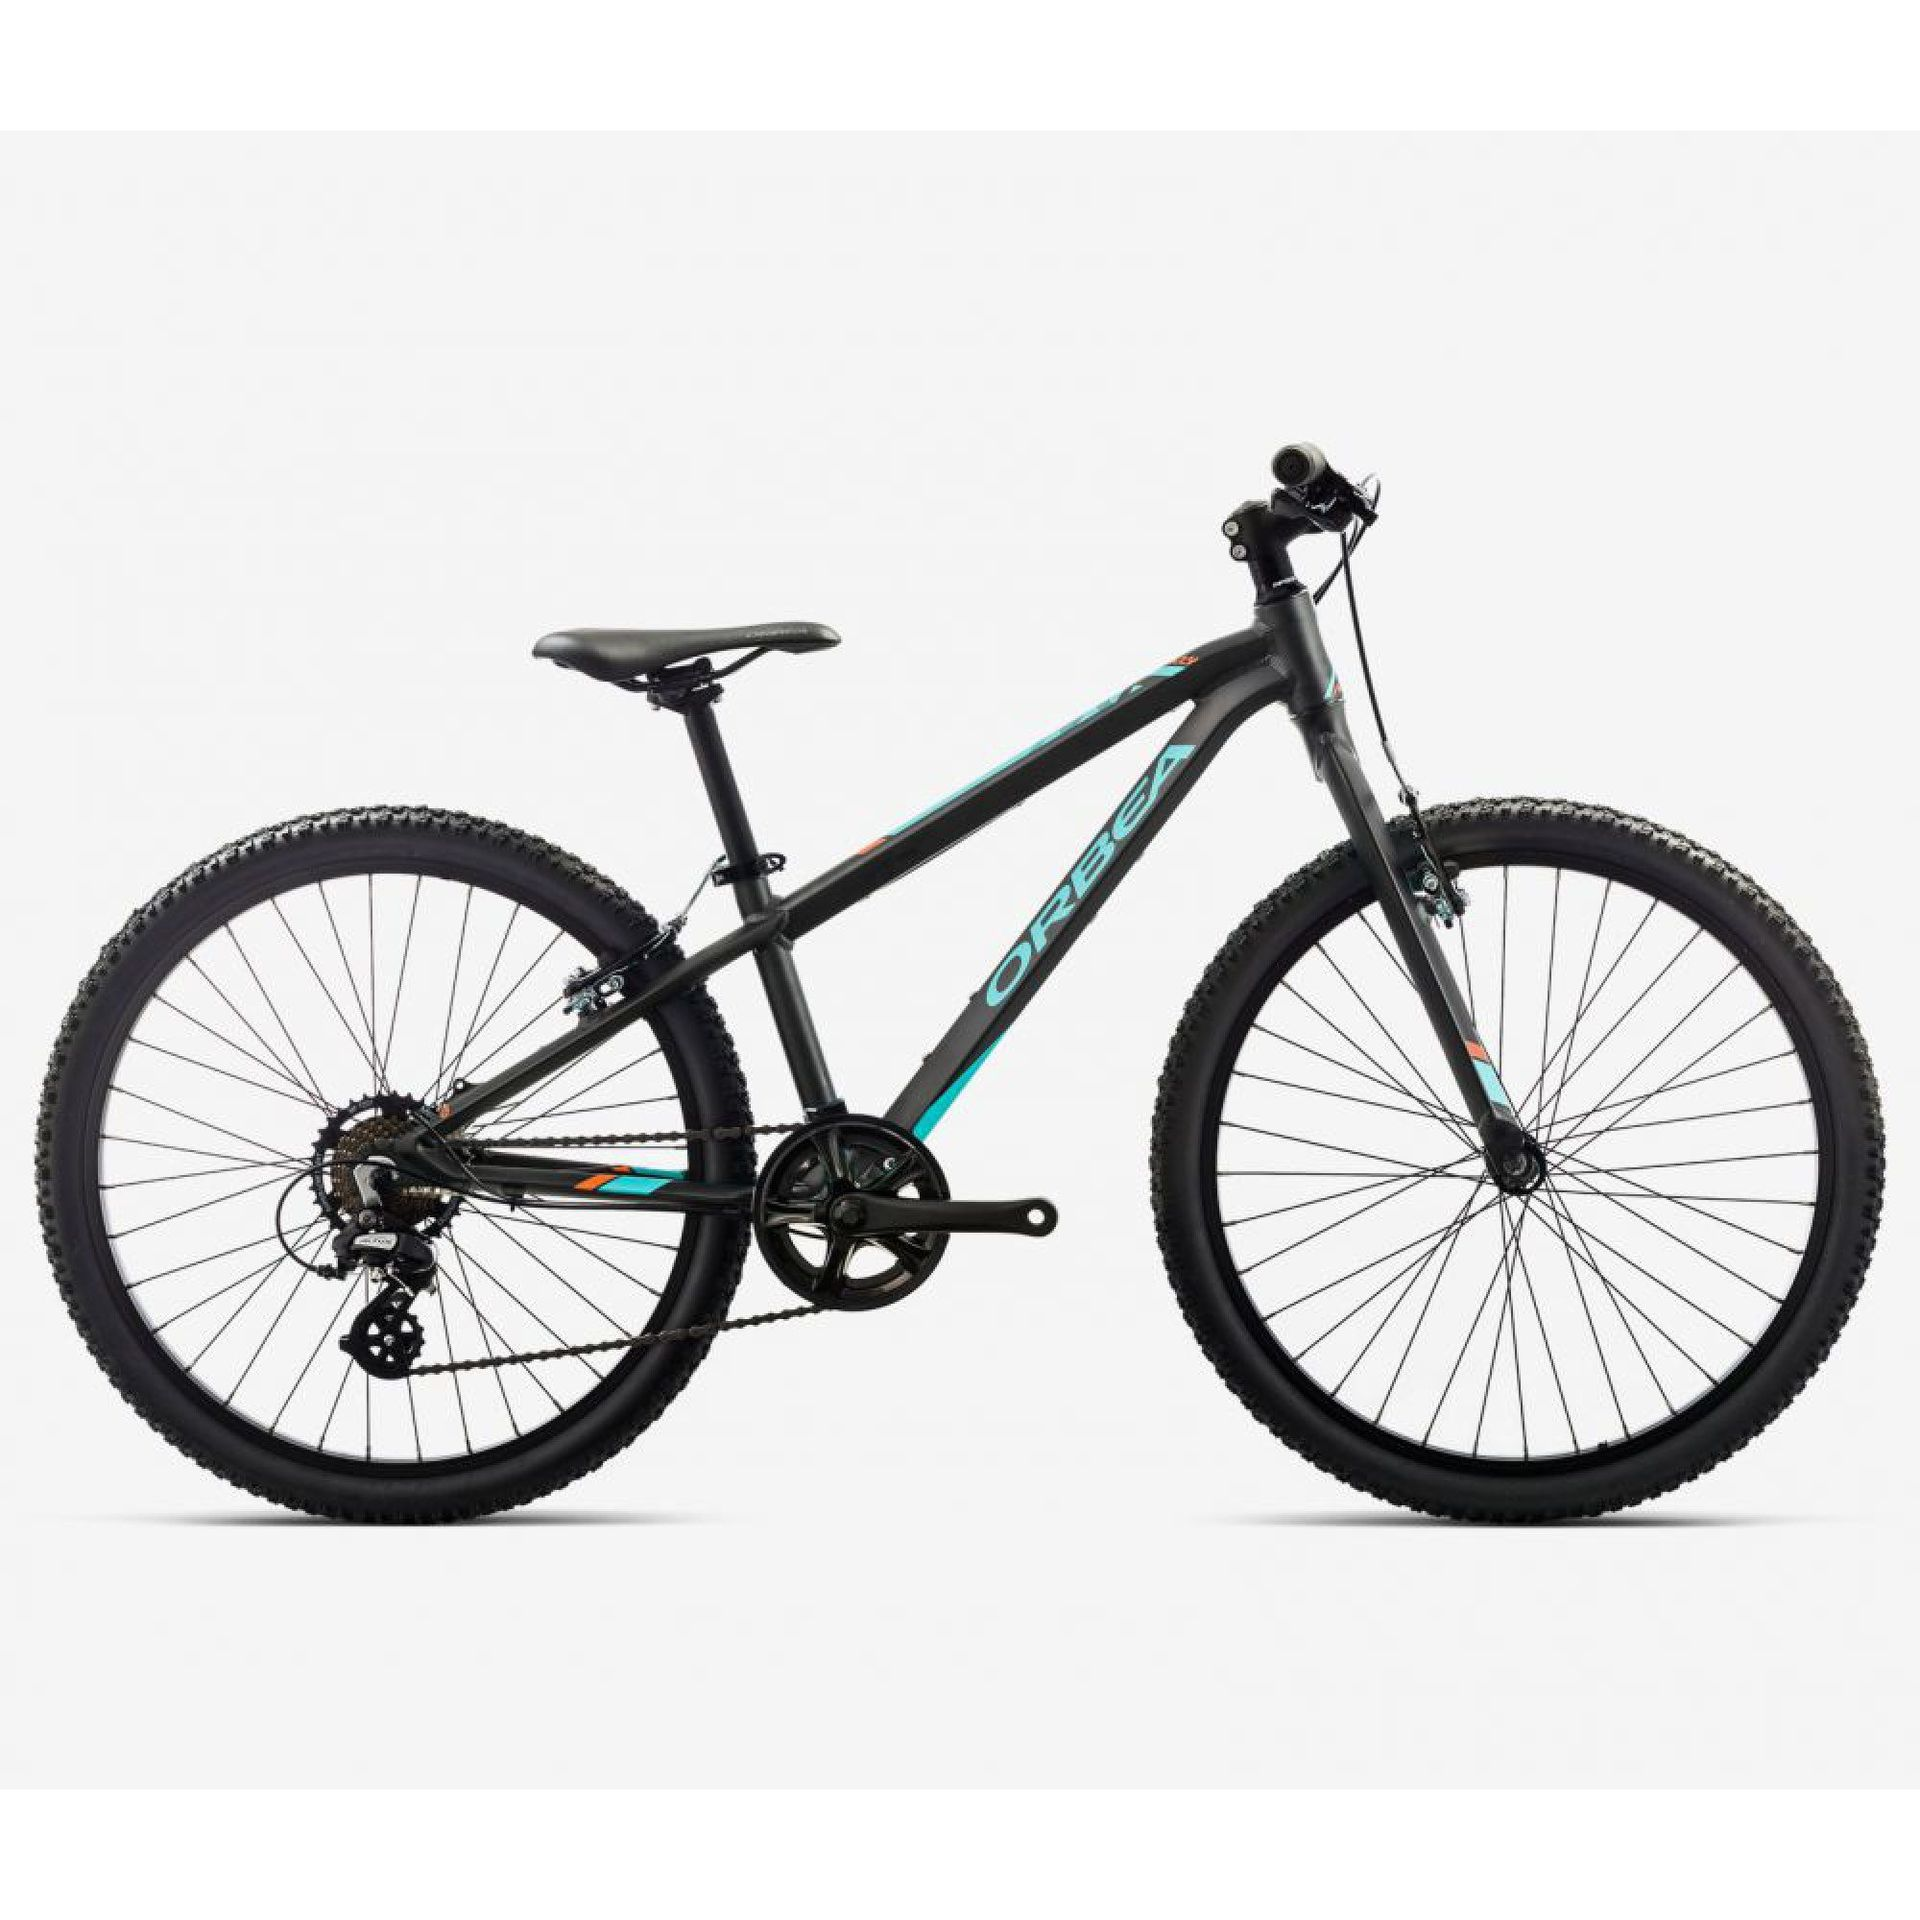 ROWER ORBEA MX 24 DIRT BLACK|GREEN